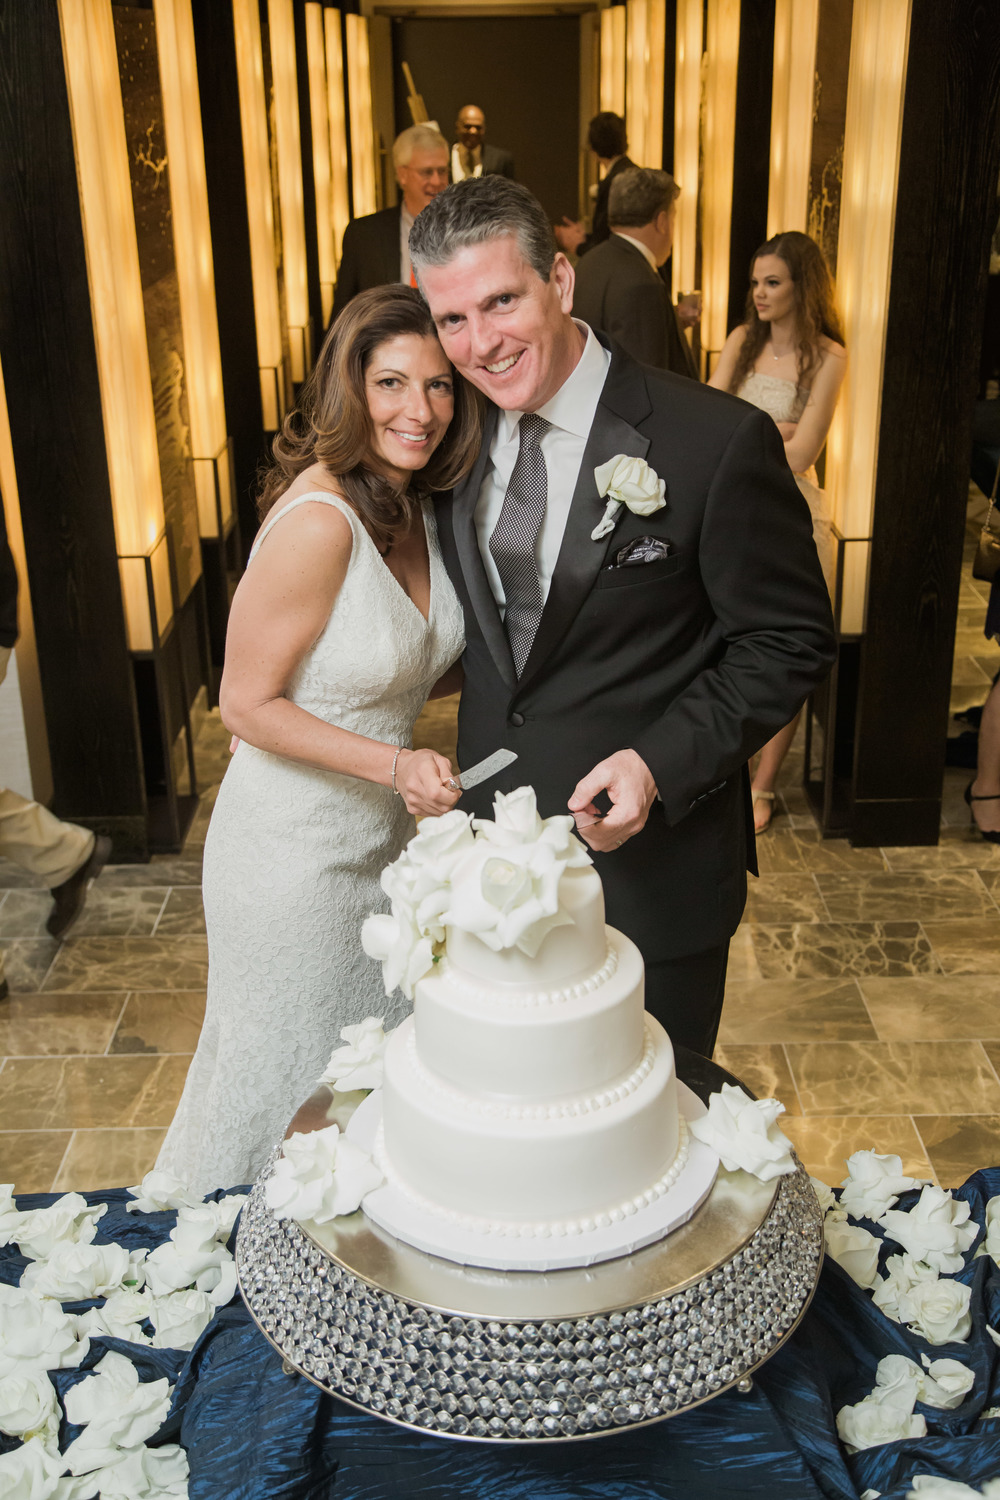 Wedding cake by the pastry team at Caesars Palace.  Flowers by DBD Vegas.  I love the blue linen!  Thank you to my friends at Caesars and The Nobu Hotel for all of your support and for allowing me to do such an intimate wedding in the Nobu Villas.  And to my creative partners, I truly could not have done this without you!  Always....